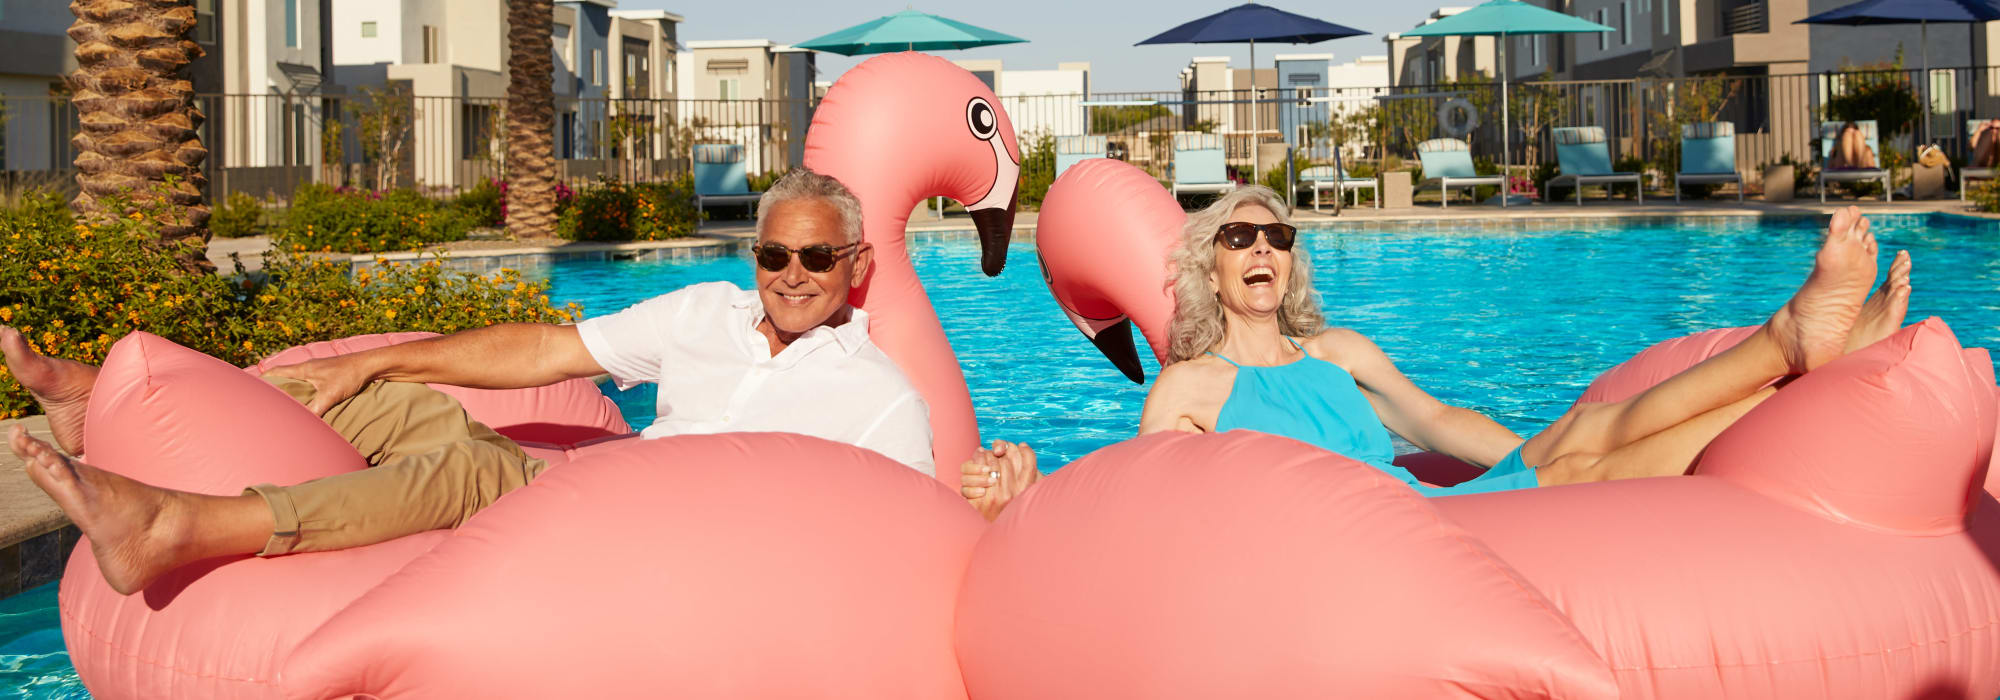 Residents on flamingo pool floats at Las Casas at Windrose in Litchfield Park, Arizona